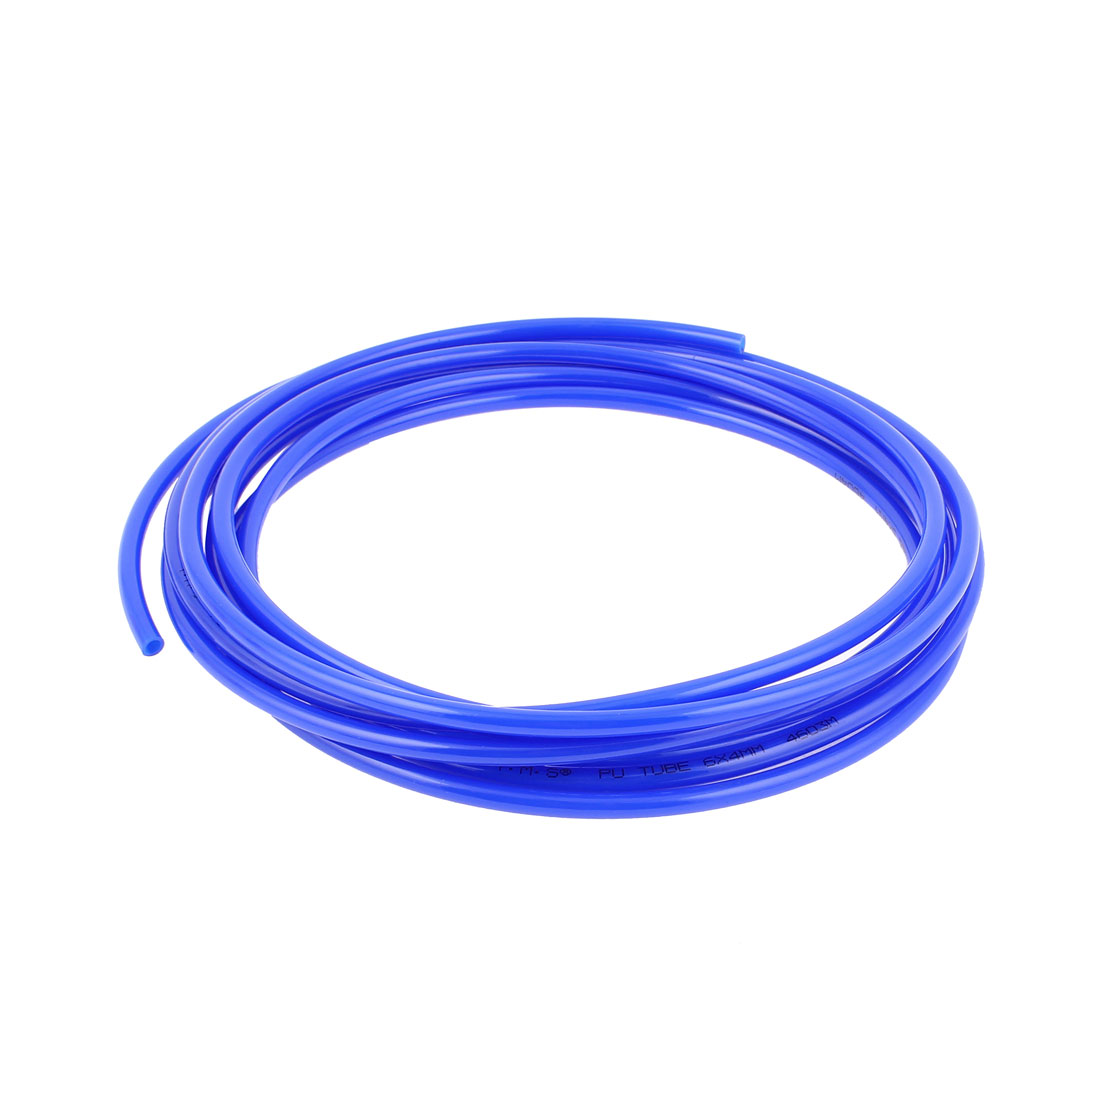 6mm x 4mm Pneumatic Air Compressor Tubing PU Hose Tube Pipe 4.5m Blue